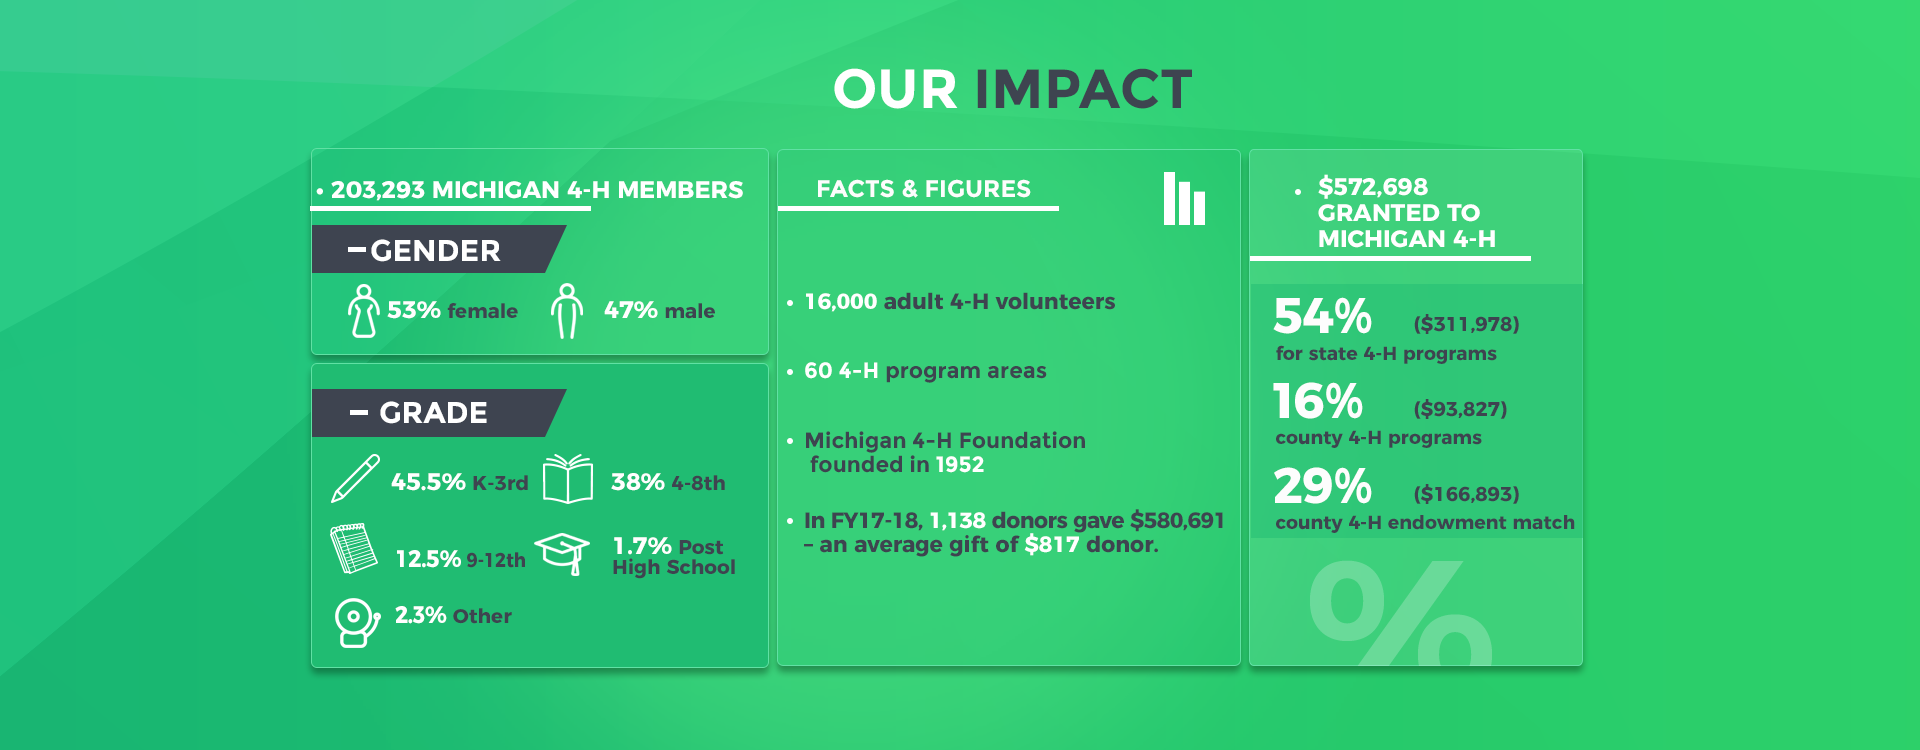 Our Impact FY17-18